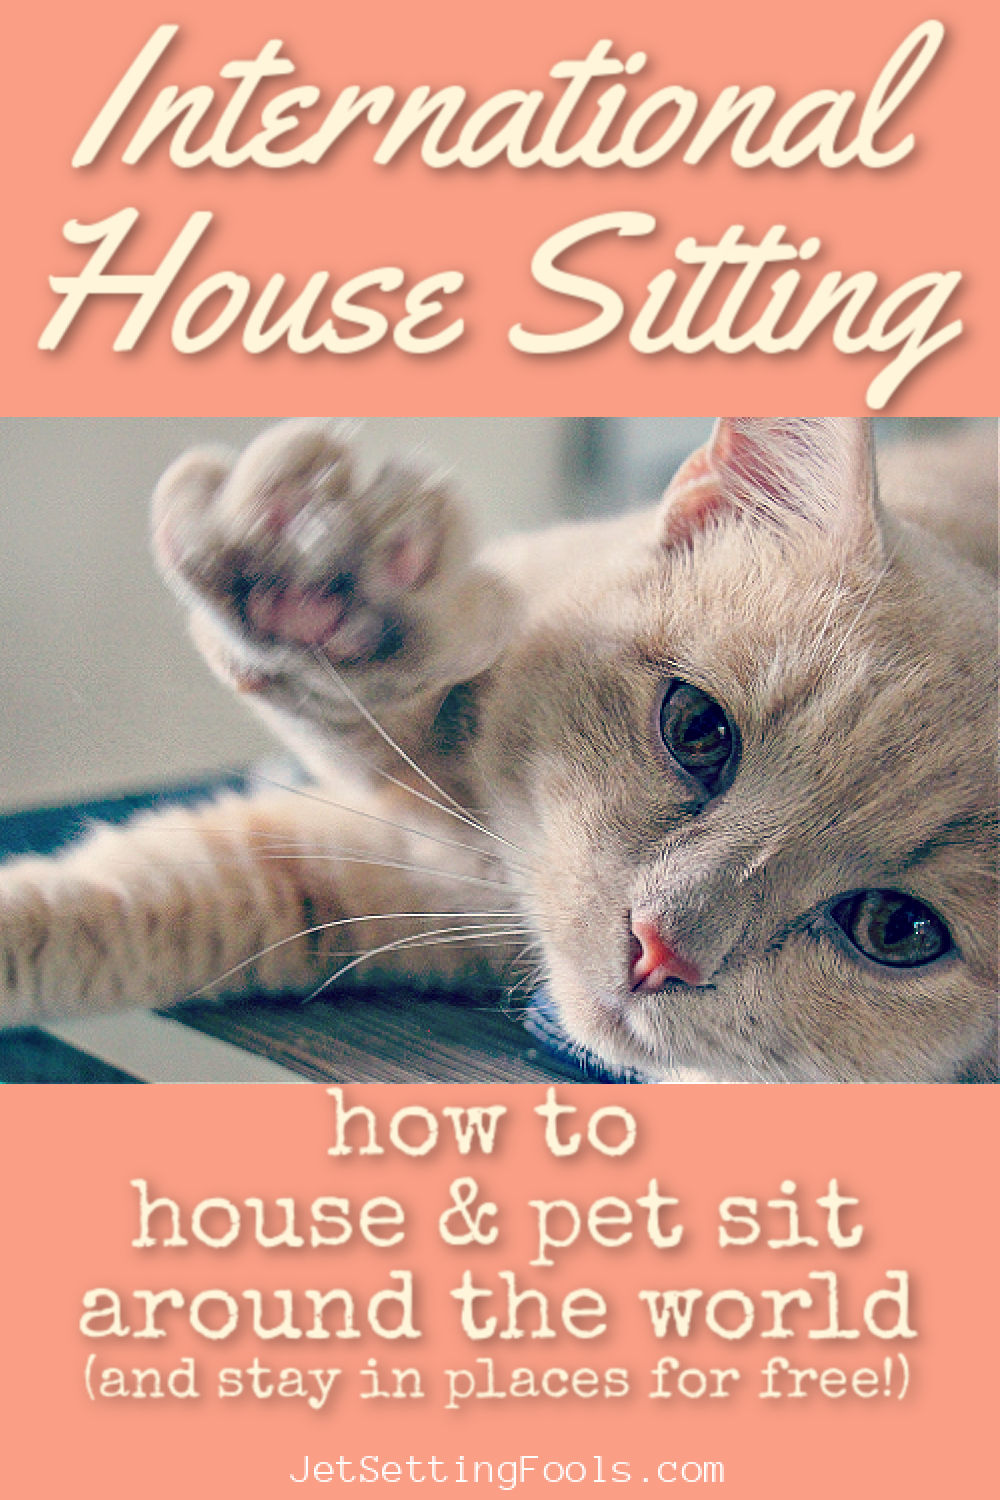 International Housesitting How To House and Pet Sit by JetSettingFools.com